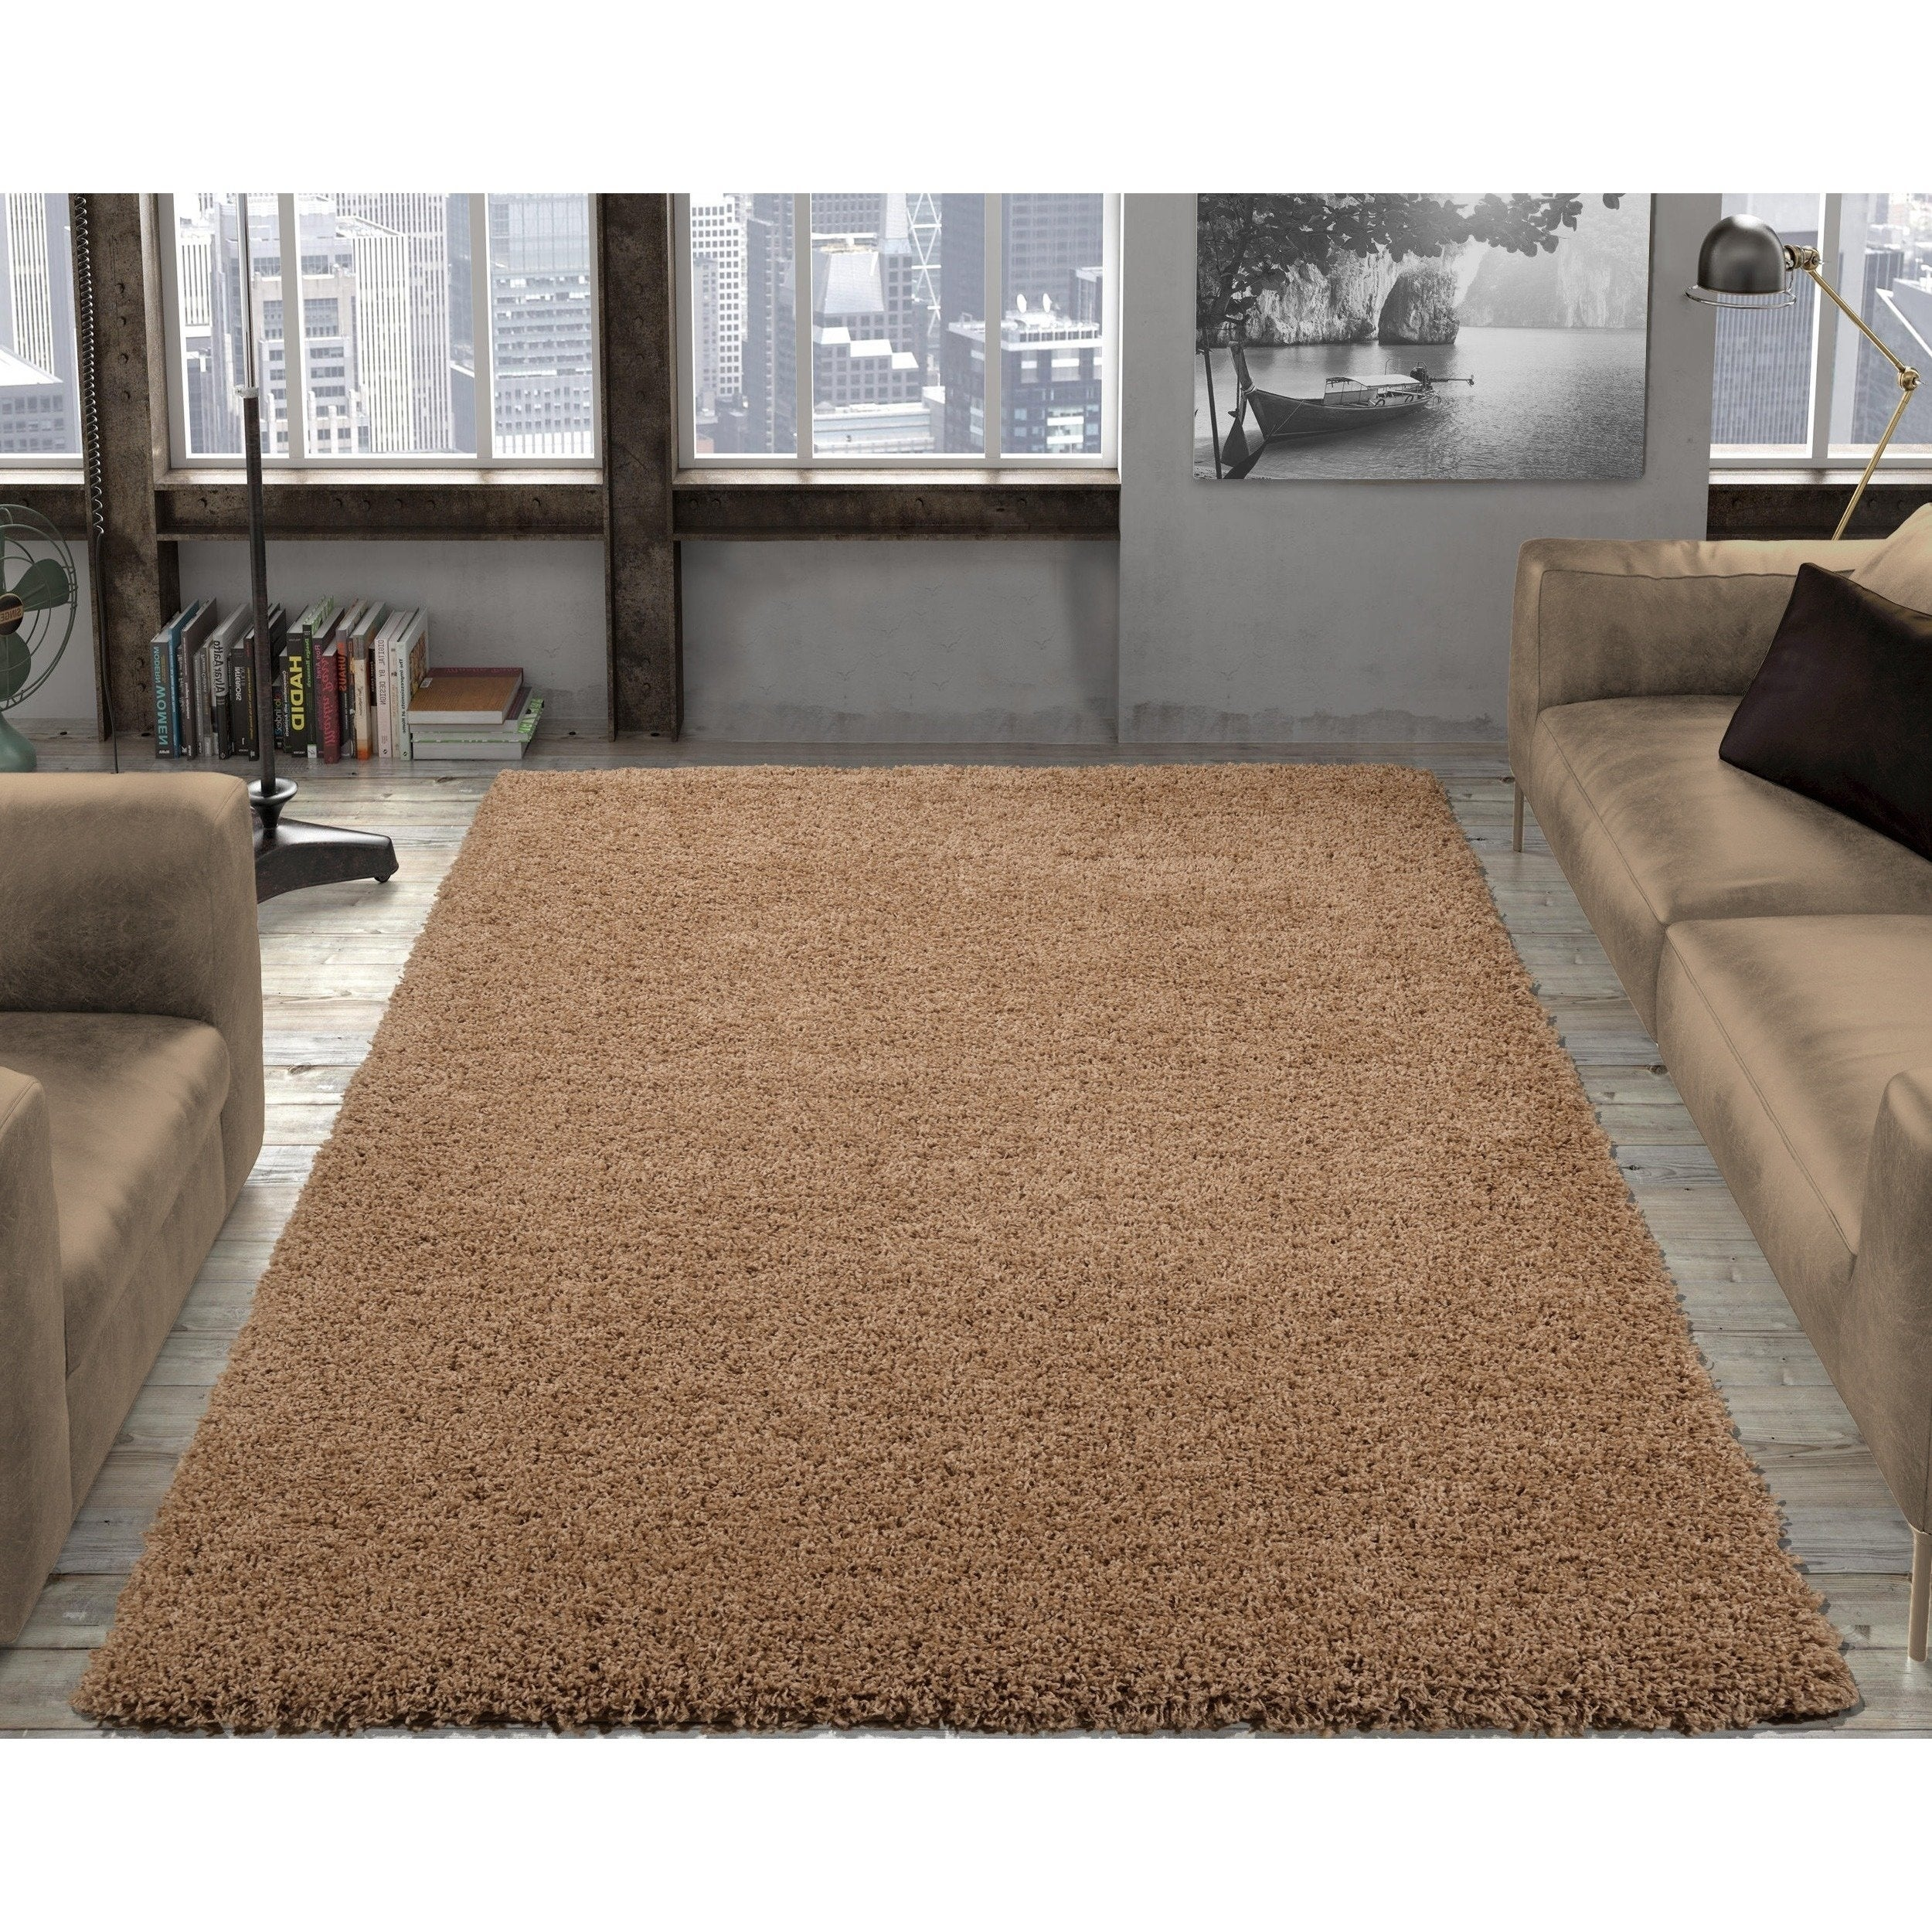 Ottomanson contemporary soft cozy color solid beige shag rug 53 x 7